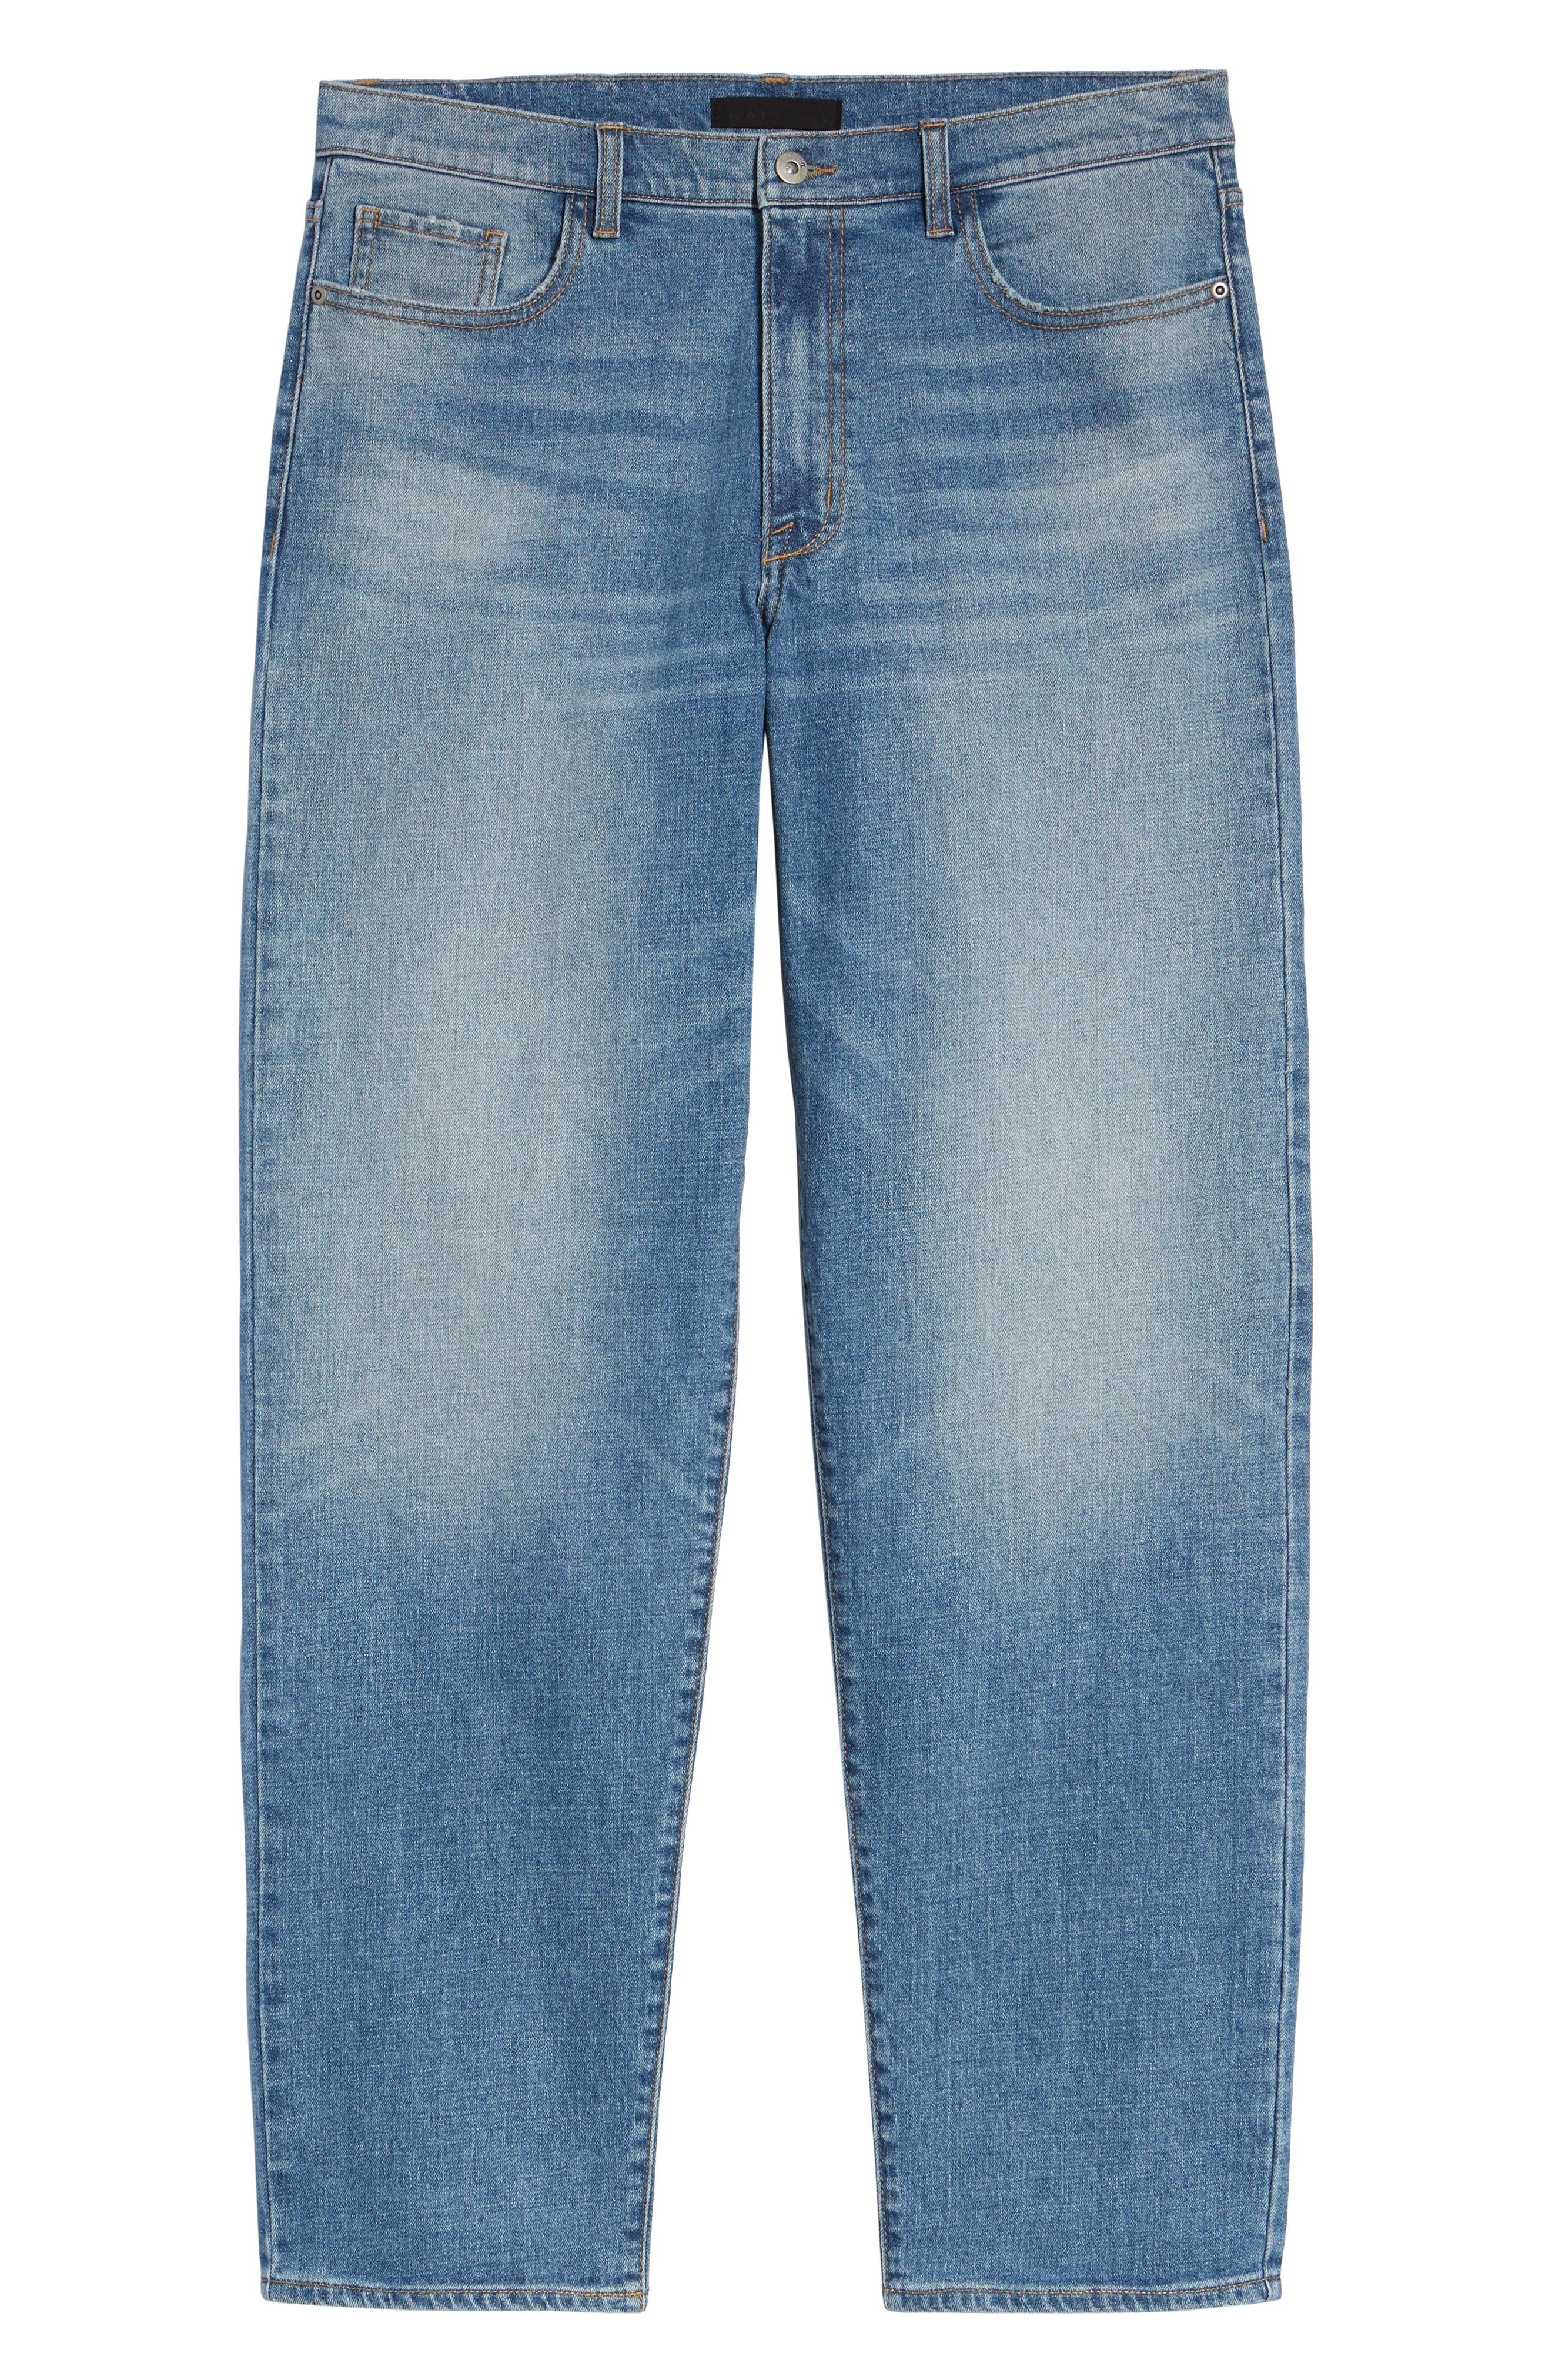 Straight Leg Jeans,                             Alternate thumbnail 6, color,                             BLUE EVAN WASH